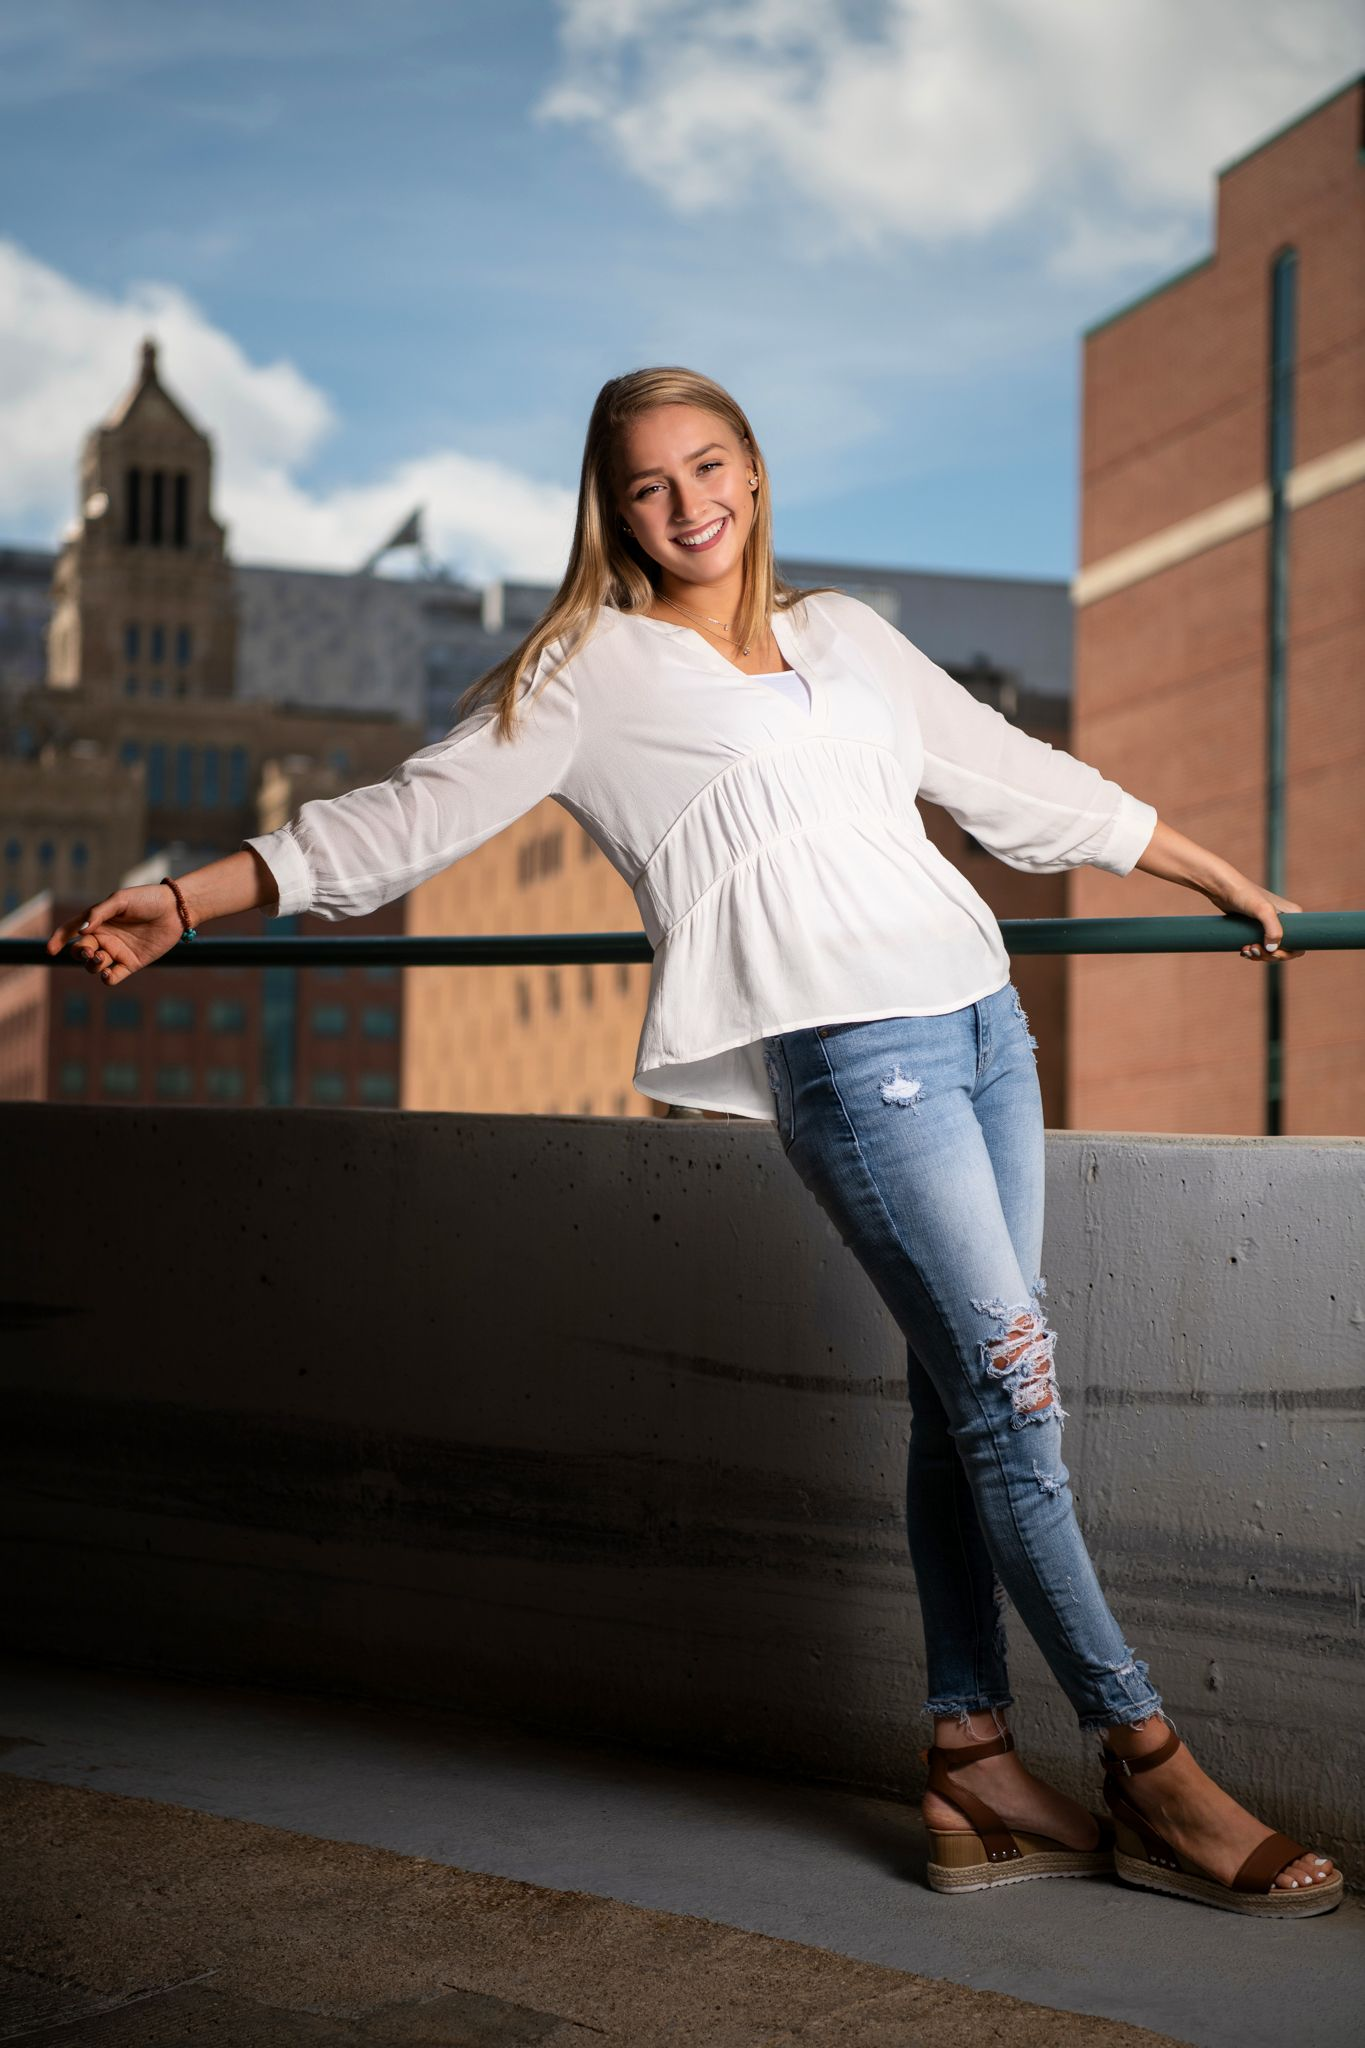 senior girl in white top with torn blue jeans atop parking garage